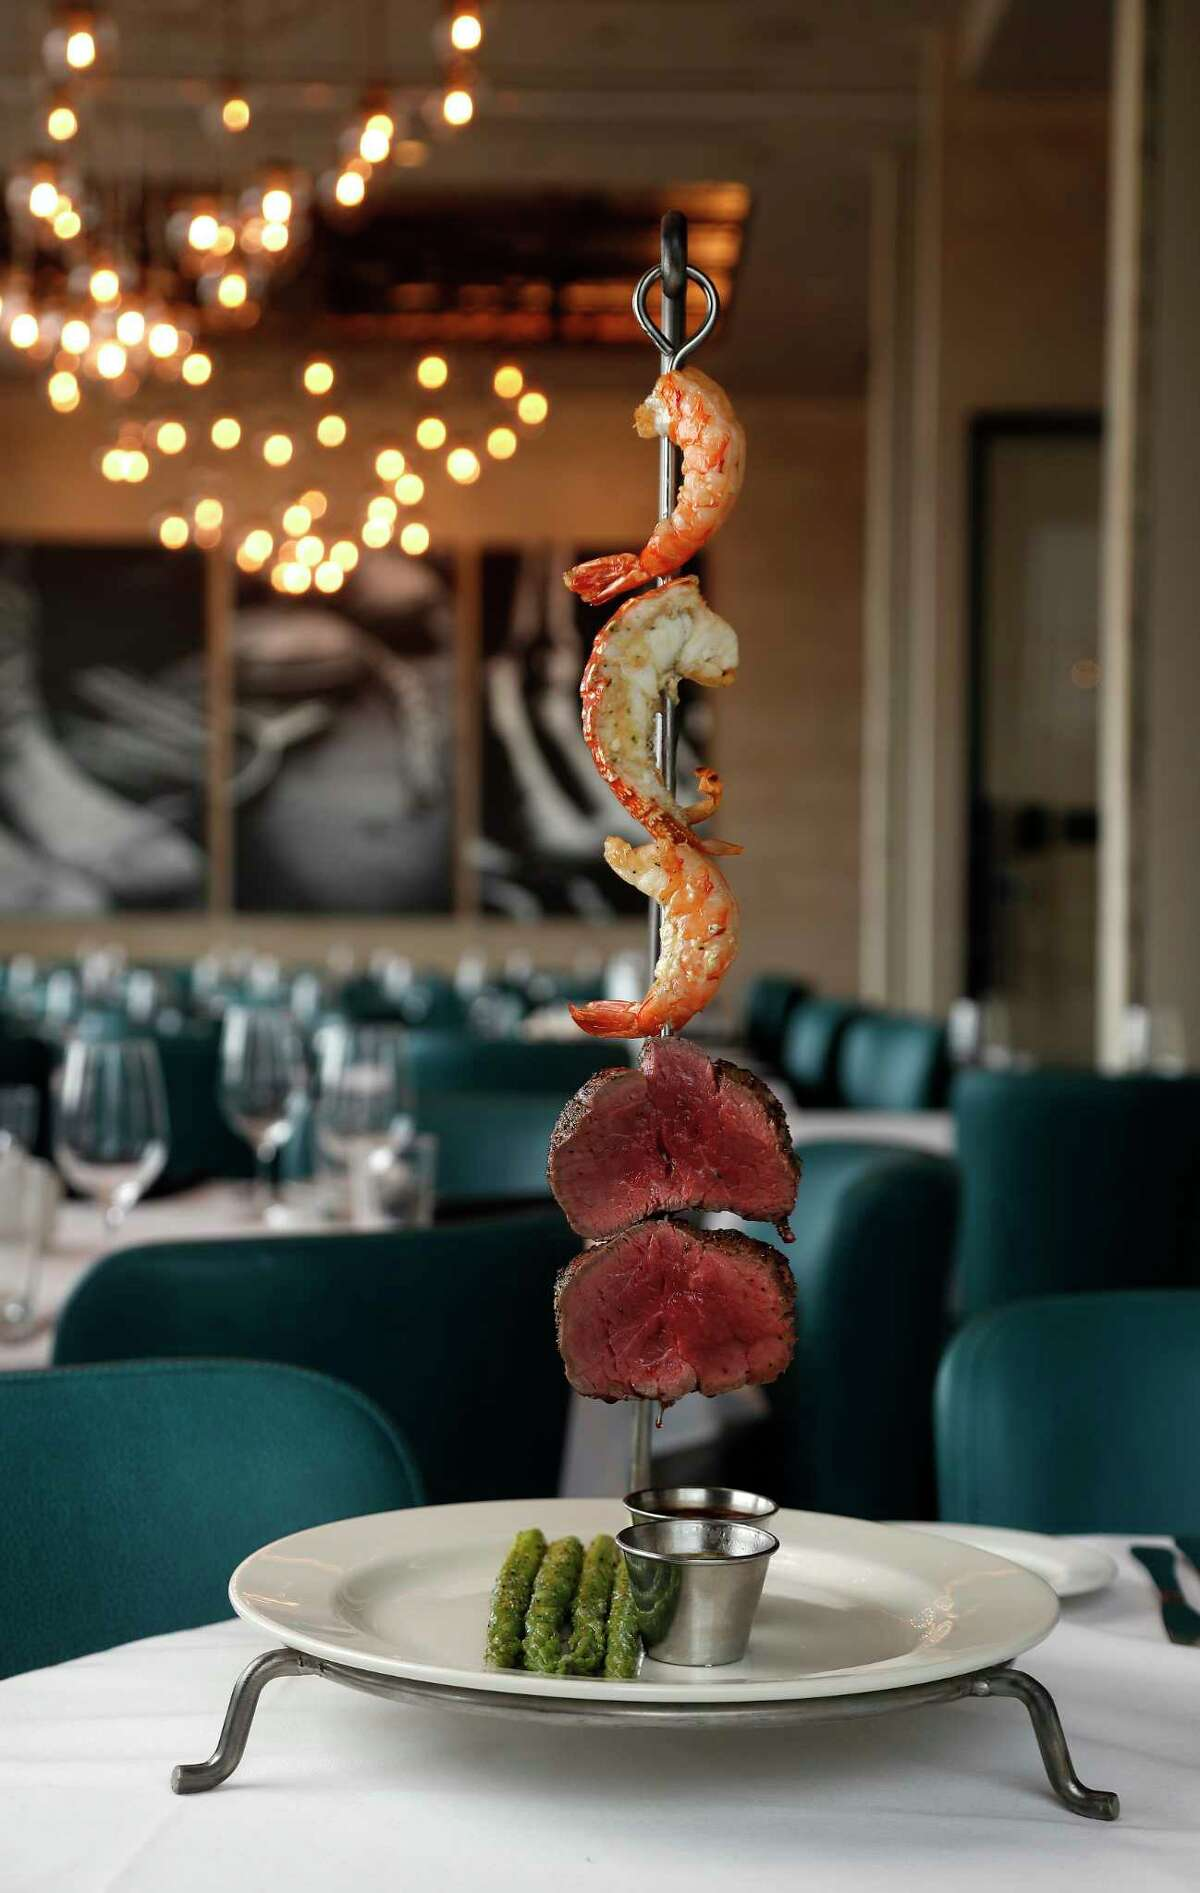 Symphony Kabob of tenderloin, shrimp and lobster tail at the new Perry's Steakhouse & Grille River Oaks.